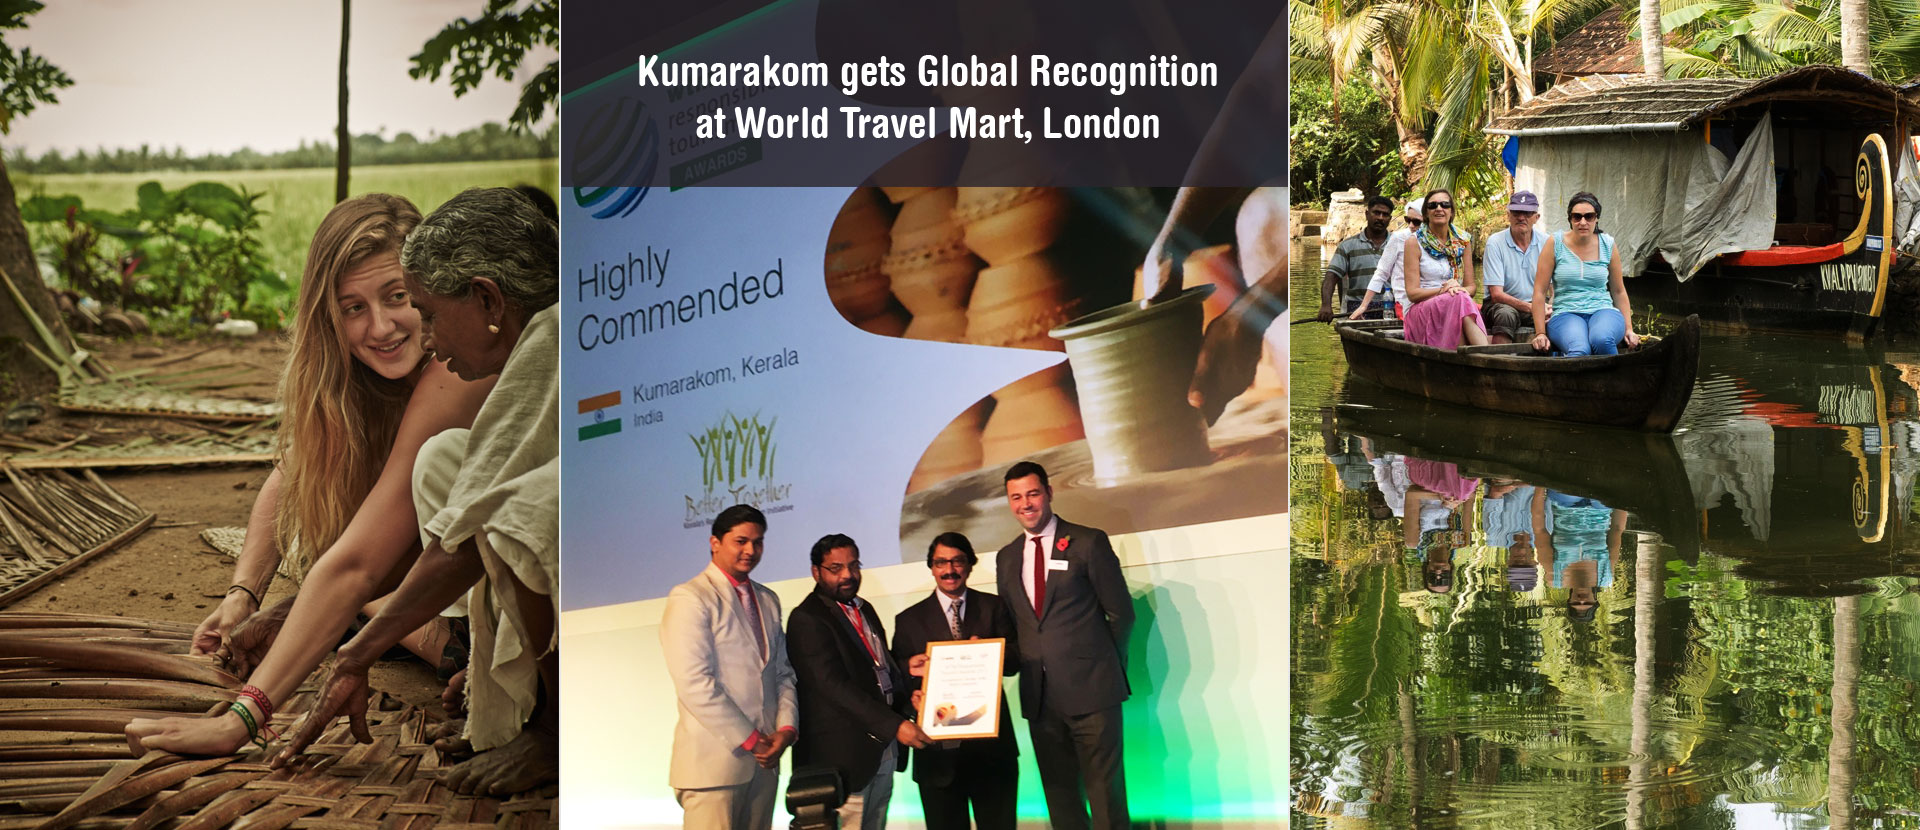 Kumarakom gets Global Recognition at World Travel Mart, London